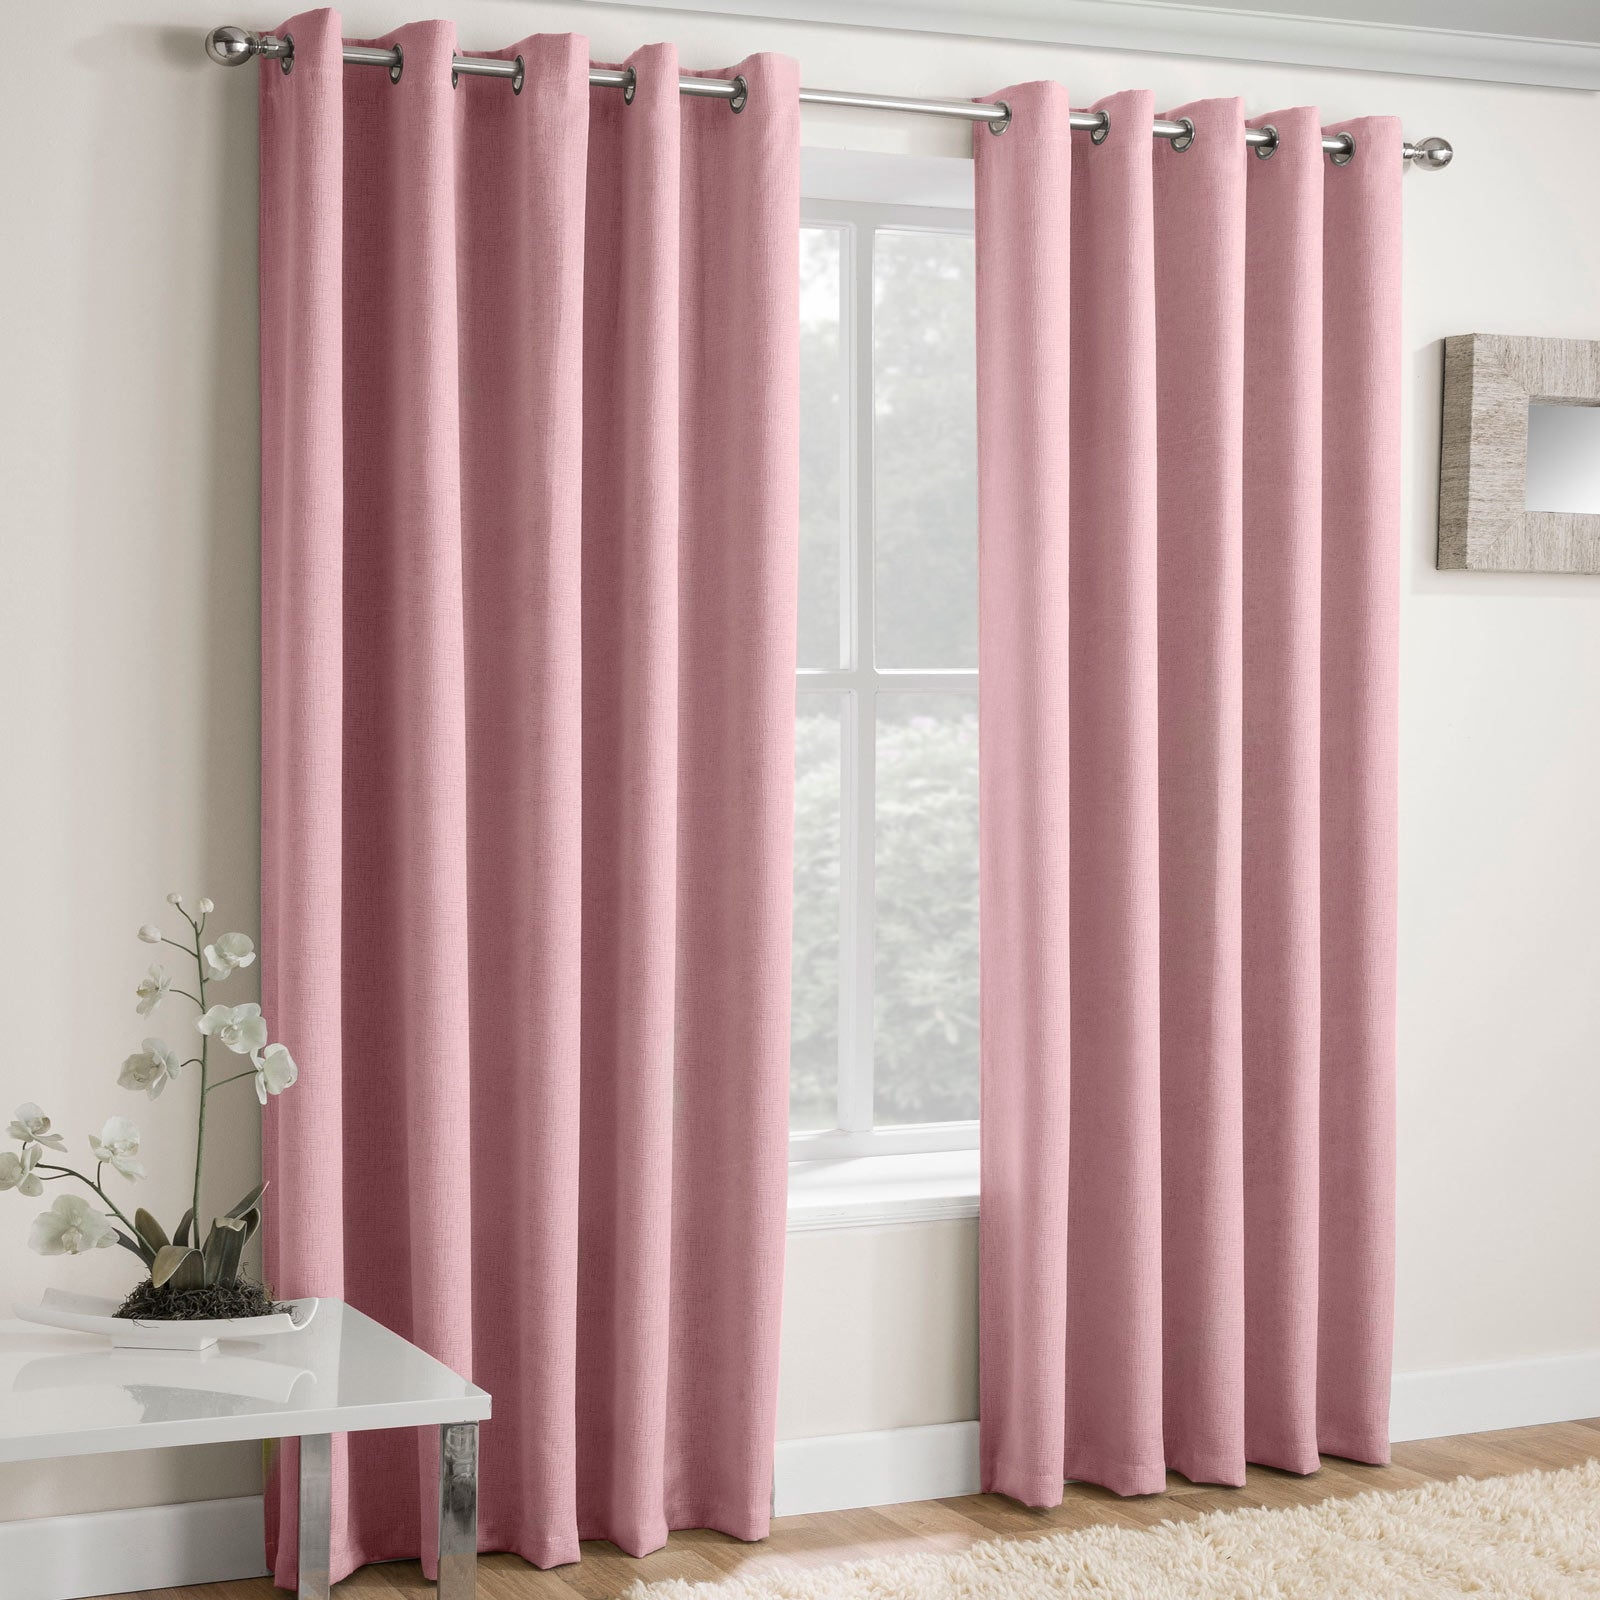 Vogue Textured Block-Out Thermal Eyelet Curtains Blush Pink - 46'' x 54'' - Ideal Textiles